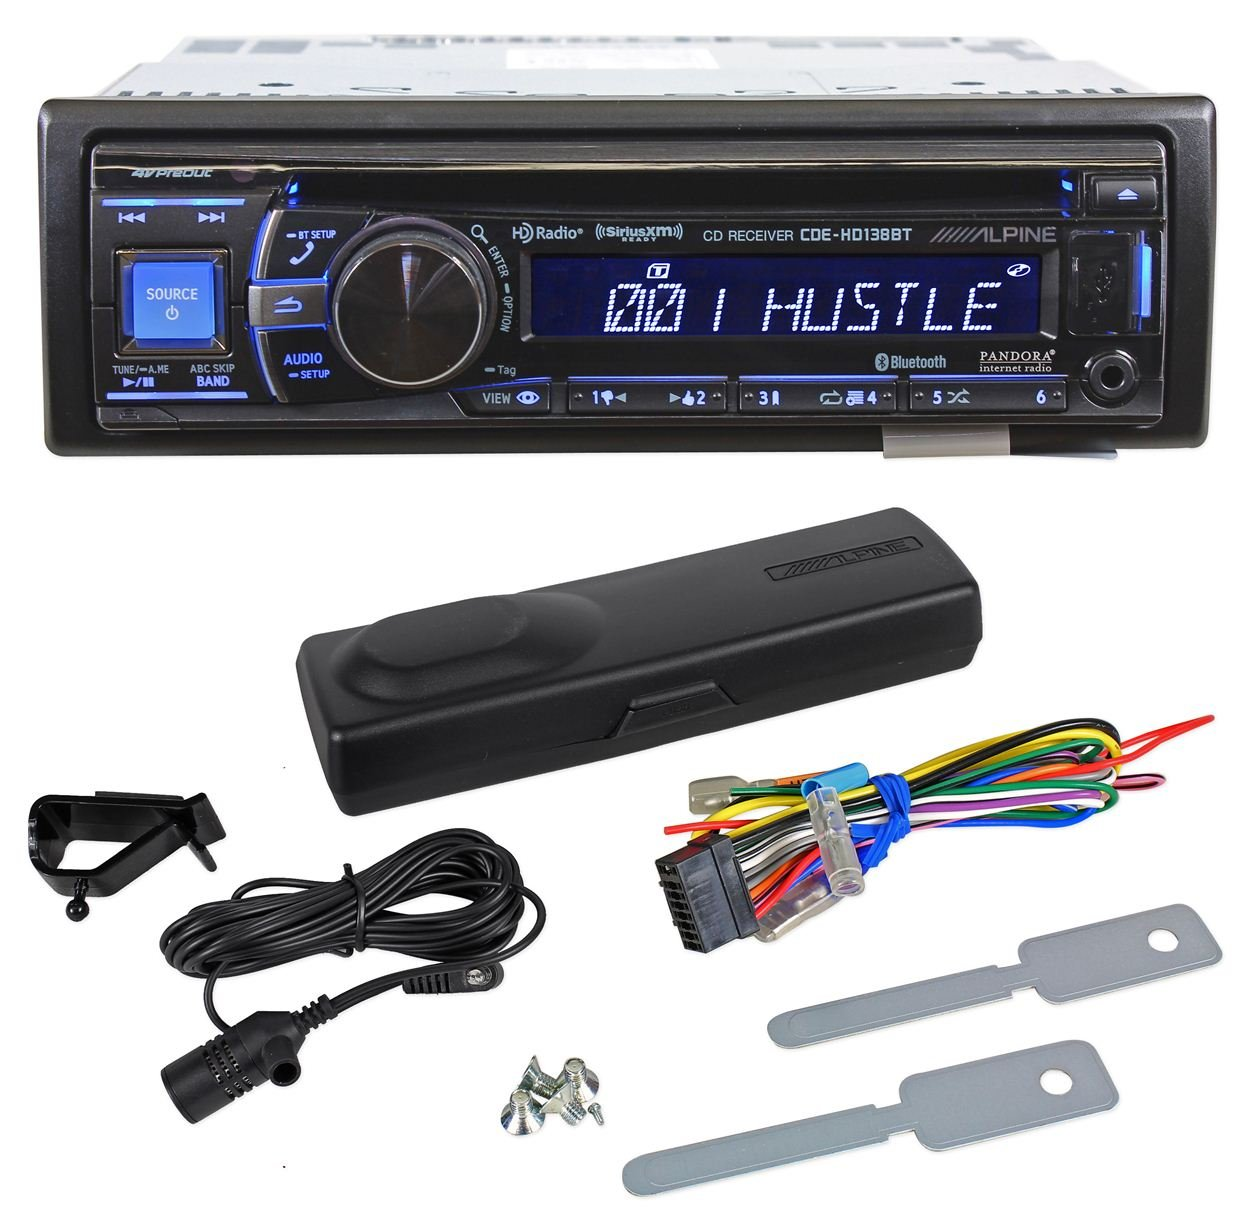 Amazon.com: CDE-HD138BT - Alpine Single-DIN CD/MP3, Built-in HD Tuner  Receiver with Bluetooth and Sirius XM Ready: Car Electronics